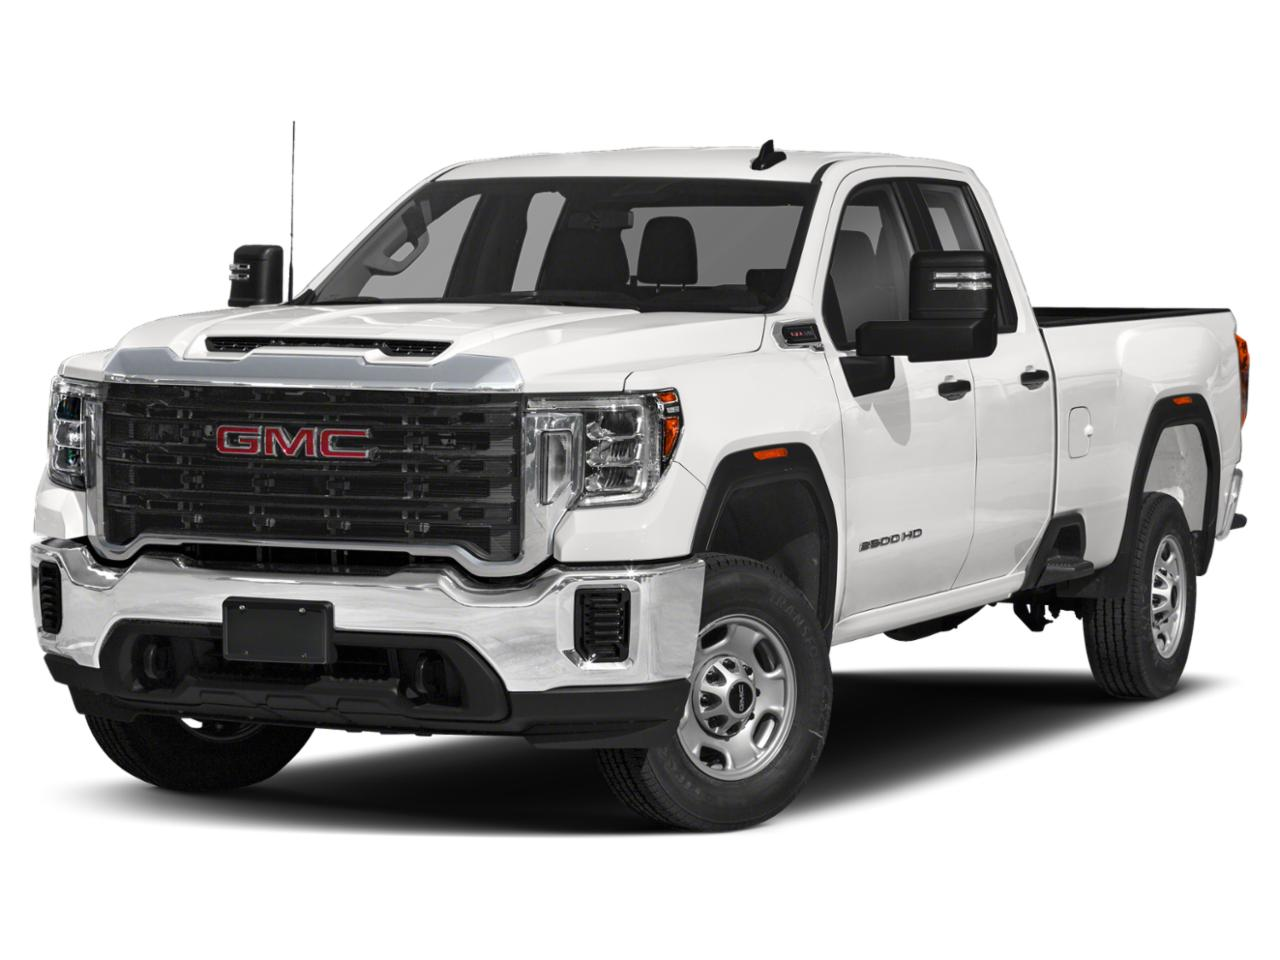 2021 GMC Sierra 2500HD Vehicle Photo in Independence, MO 64055